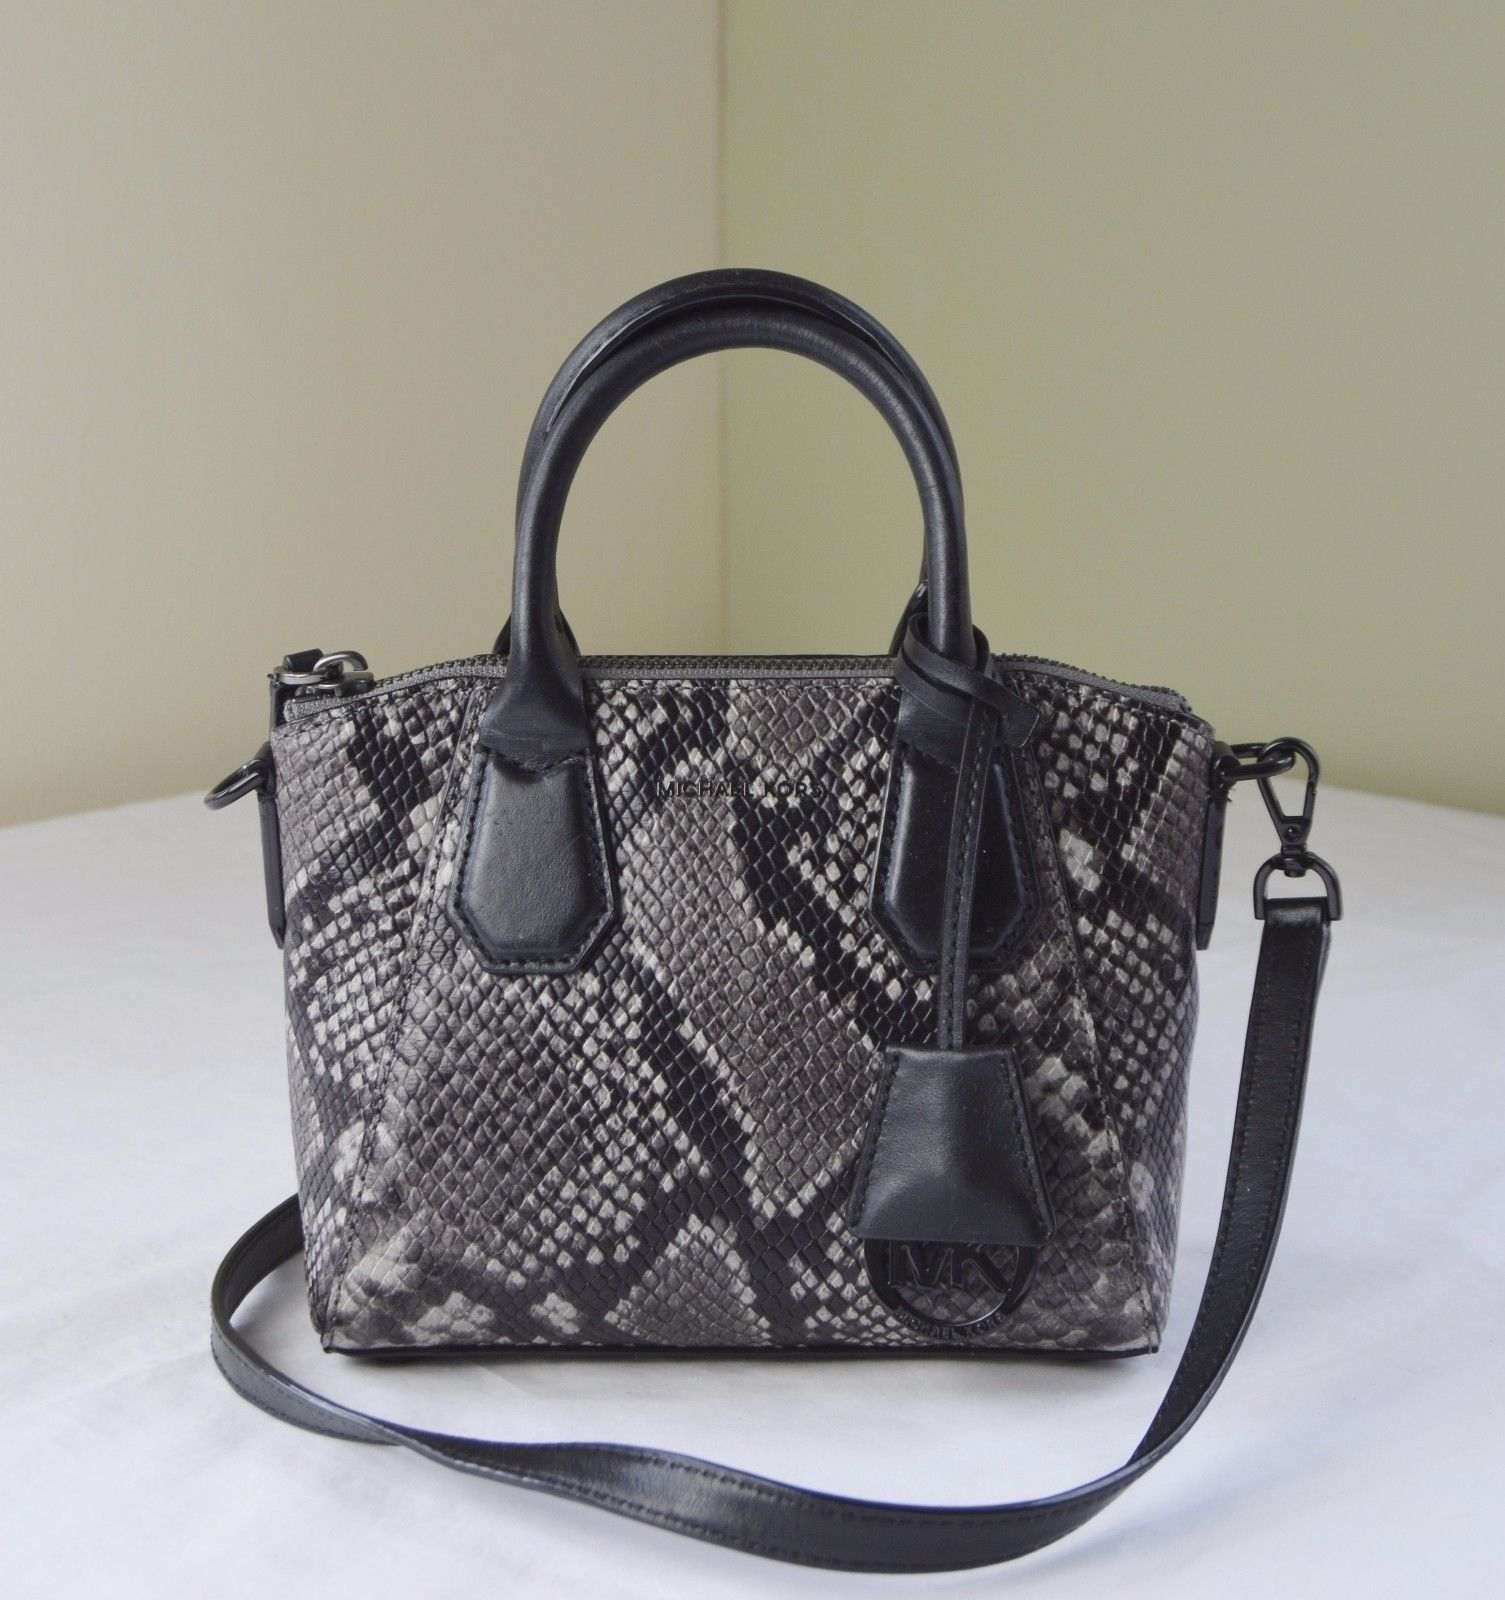 97271ee789c2 32. 32. Michael Kors Steel Grey Python Embossed Leather Campbell XS Satchel  Crossbody · Michael Kors ...